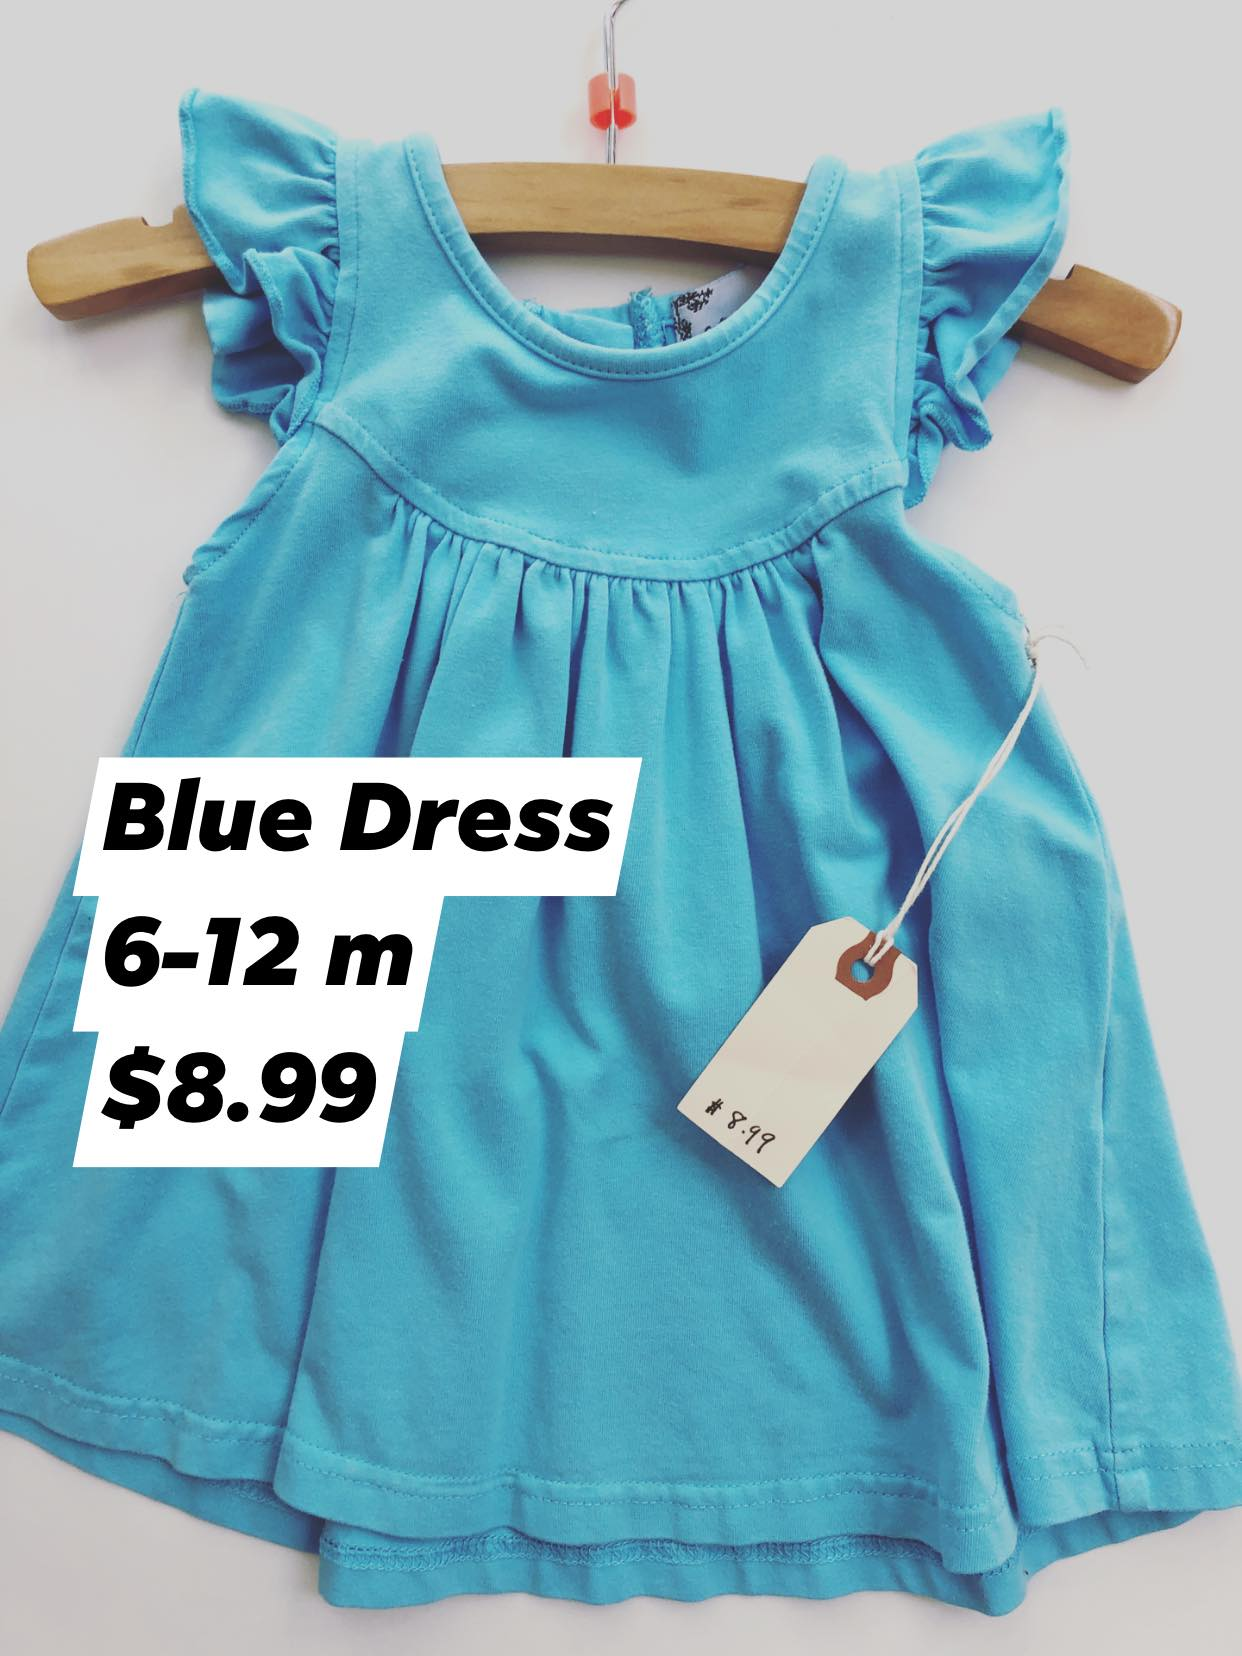 Resale 6-12 m Aqua Cotton Dress